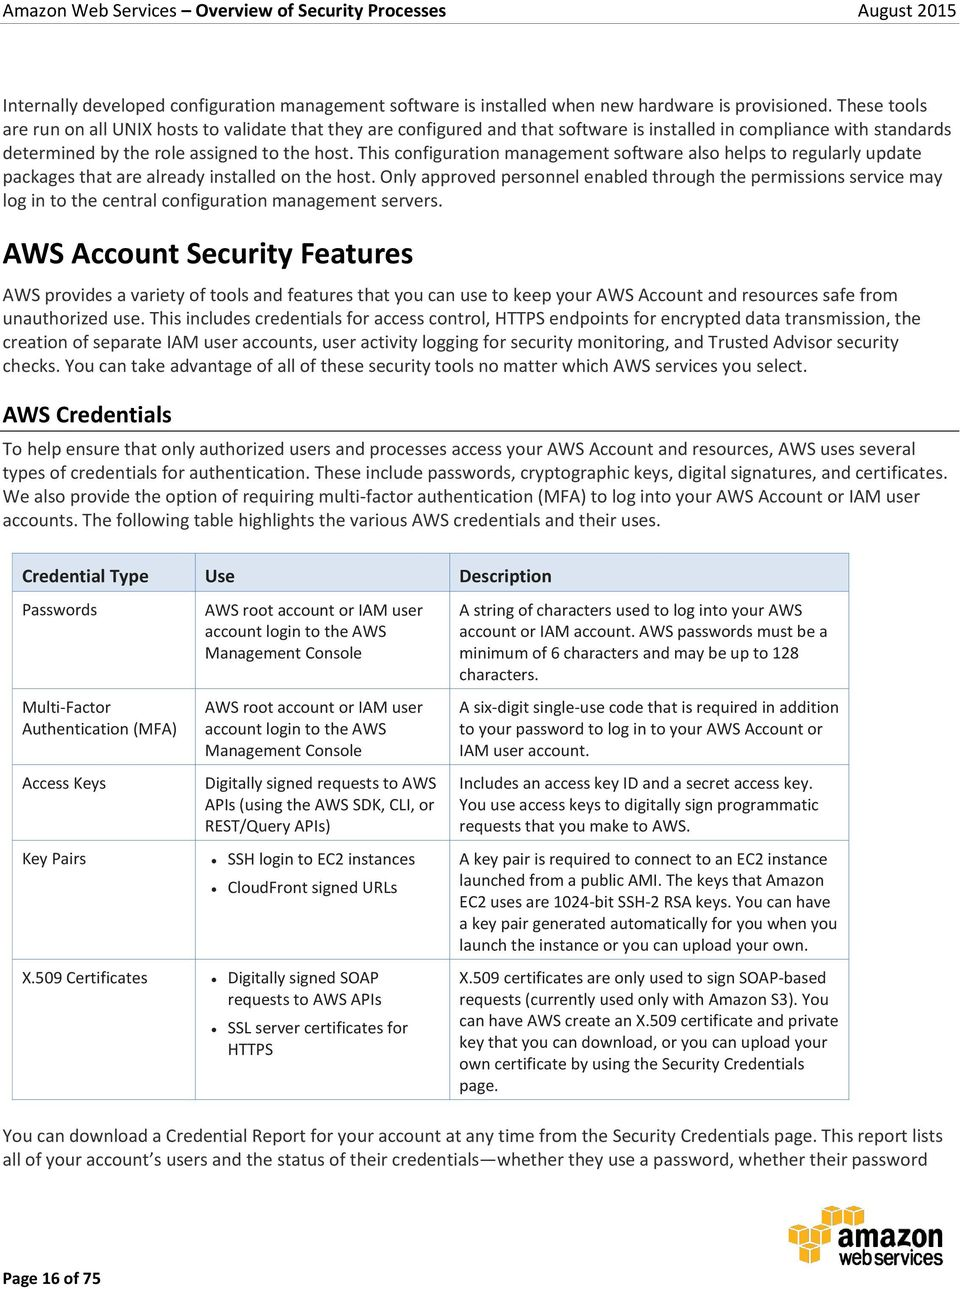 Amazon Web Services: Overview of Security Processes August PDF